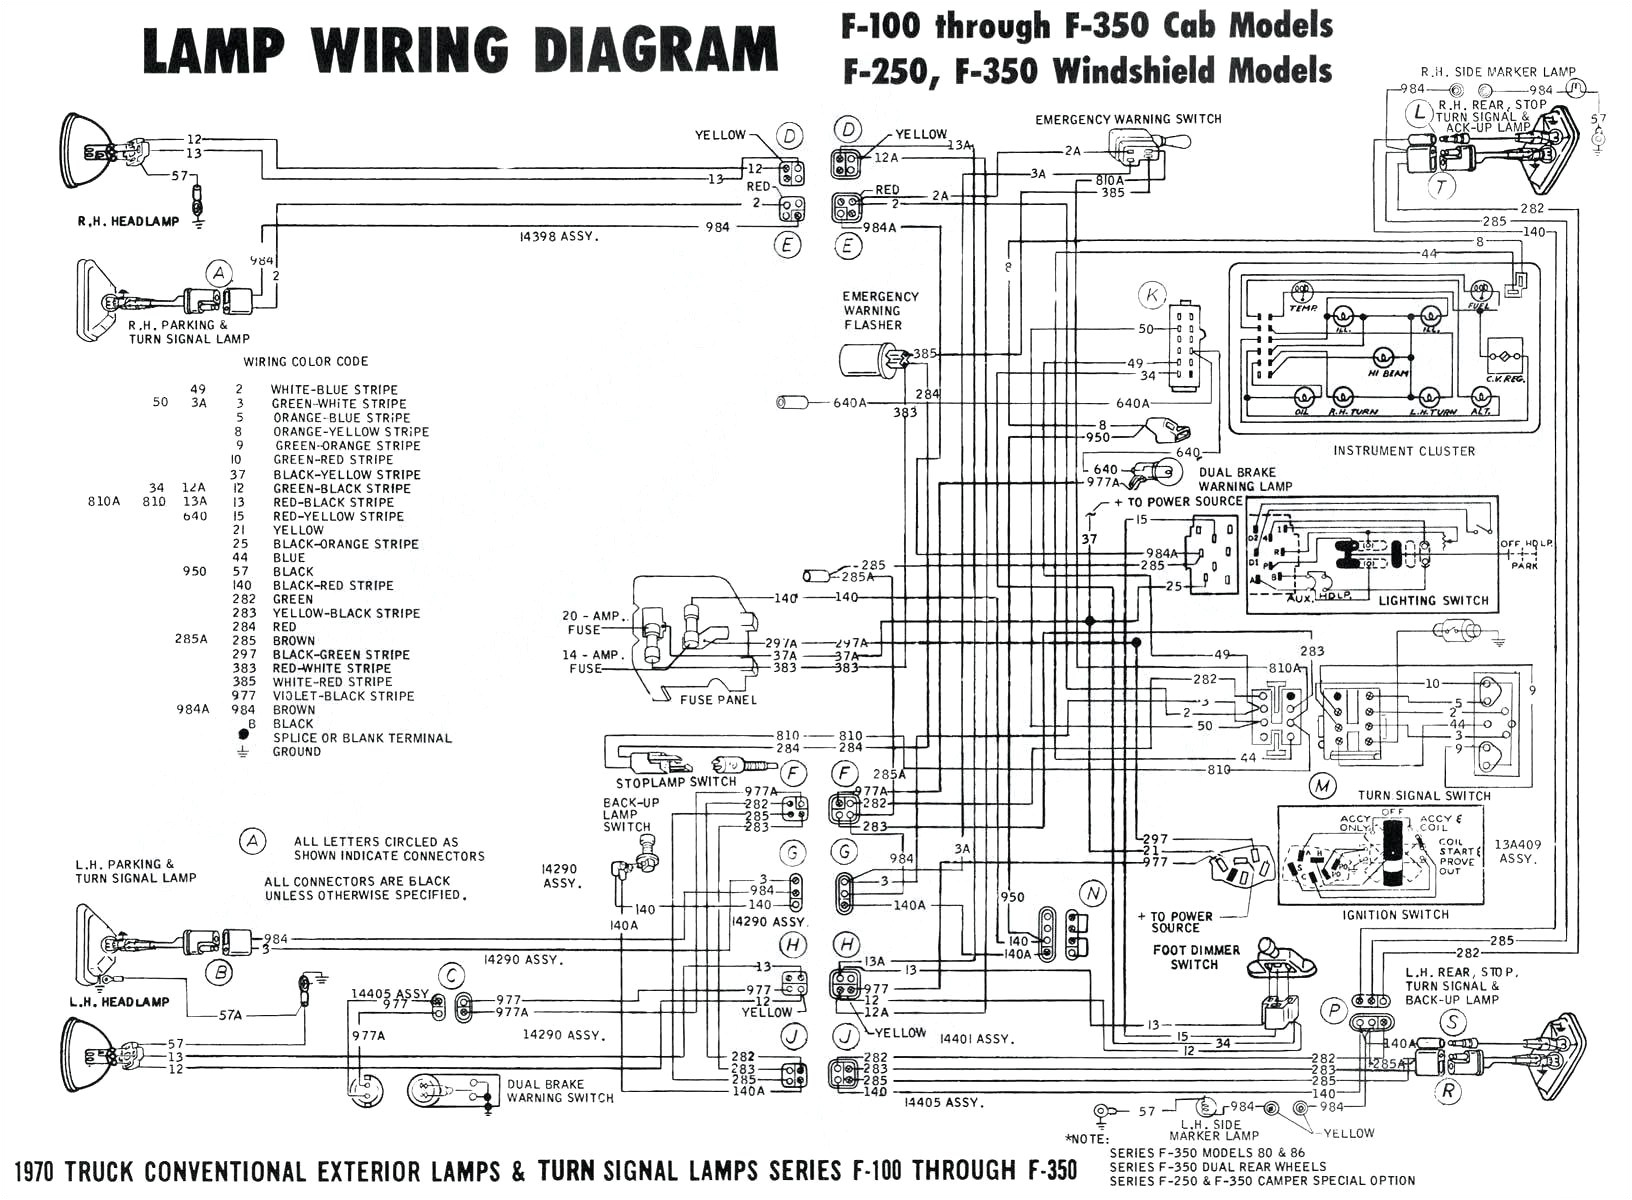 Chevy Headlight Switch Wiring Diagram Gm Headlight Switch Wiring Diagram Database